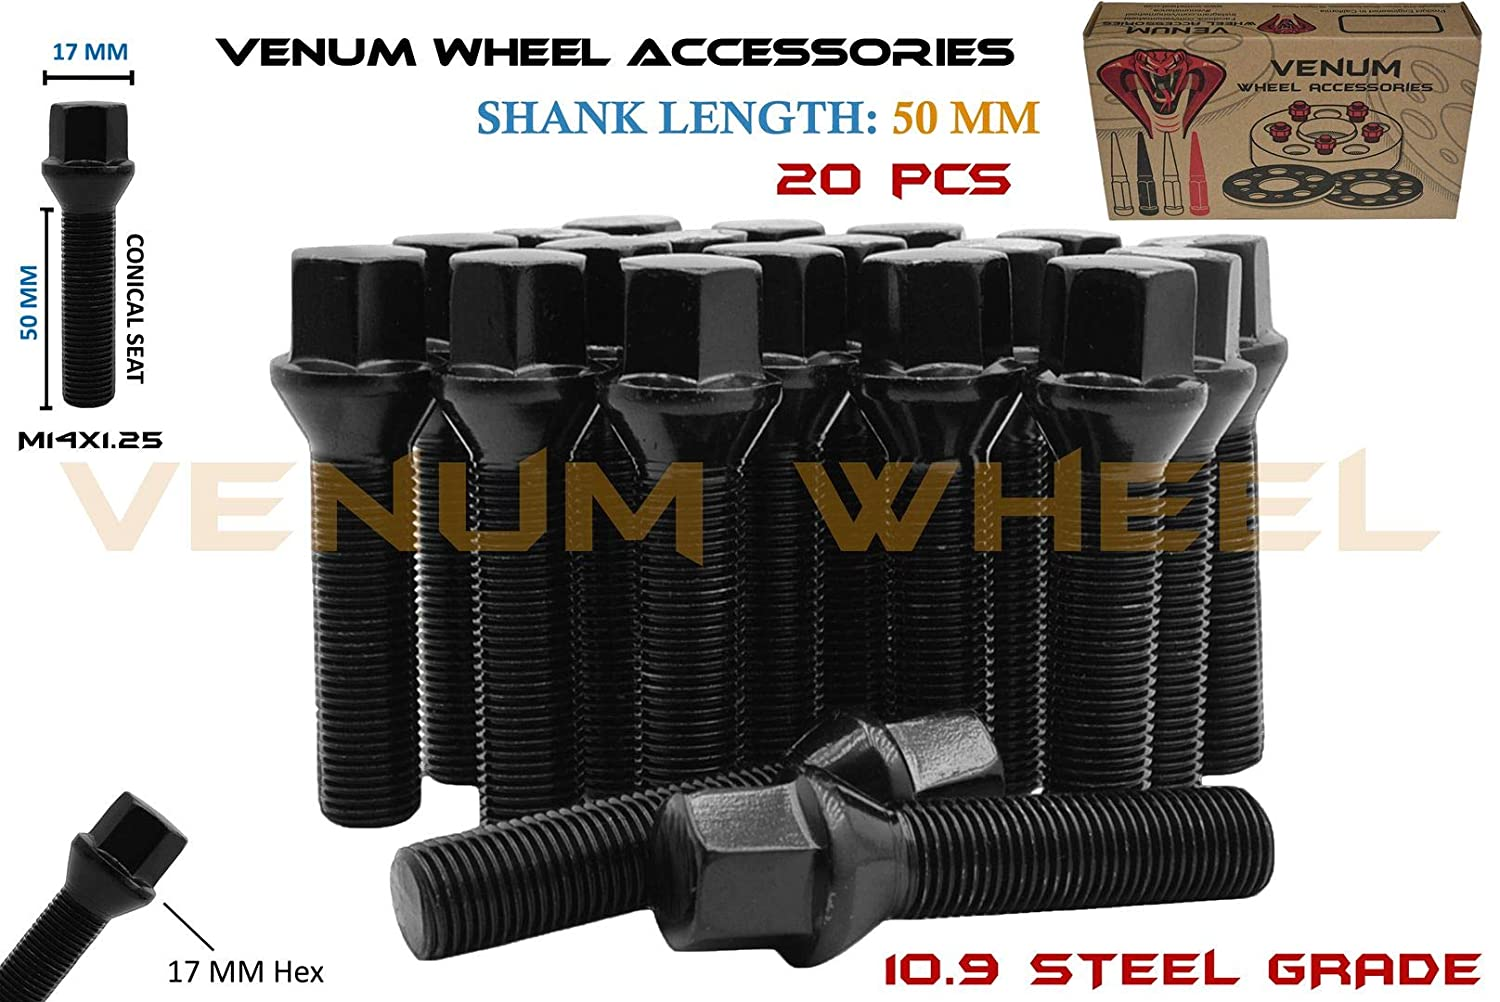 50 mm Extended Shank Requires Wheel Spacers Complete Set of 20 Pcs Lug Bolts M14x1.25 Black Powder Coated 17 mm Hex Works with BMW F-Series /& New G Series Chasis Factory /& Aftermarket Wheels